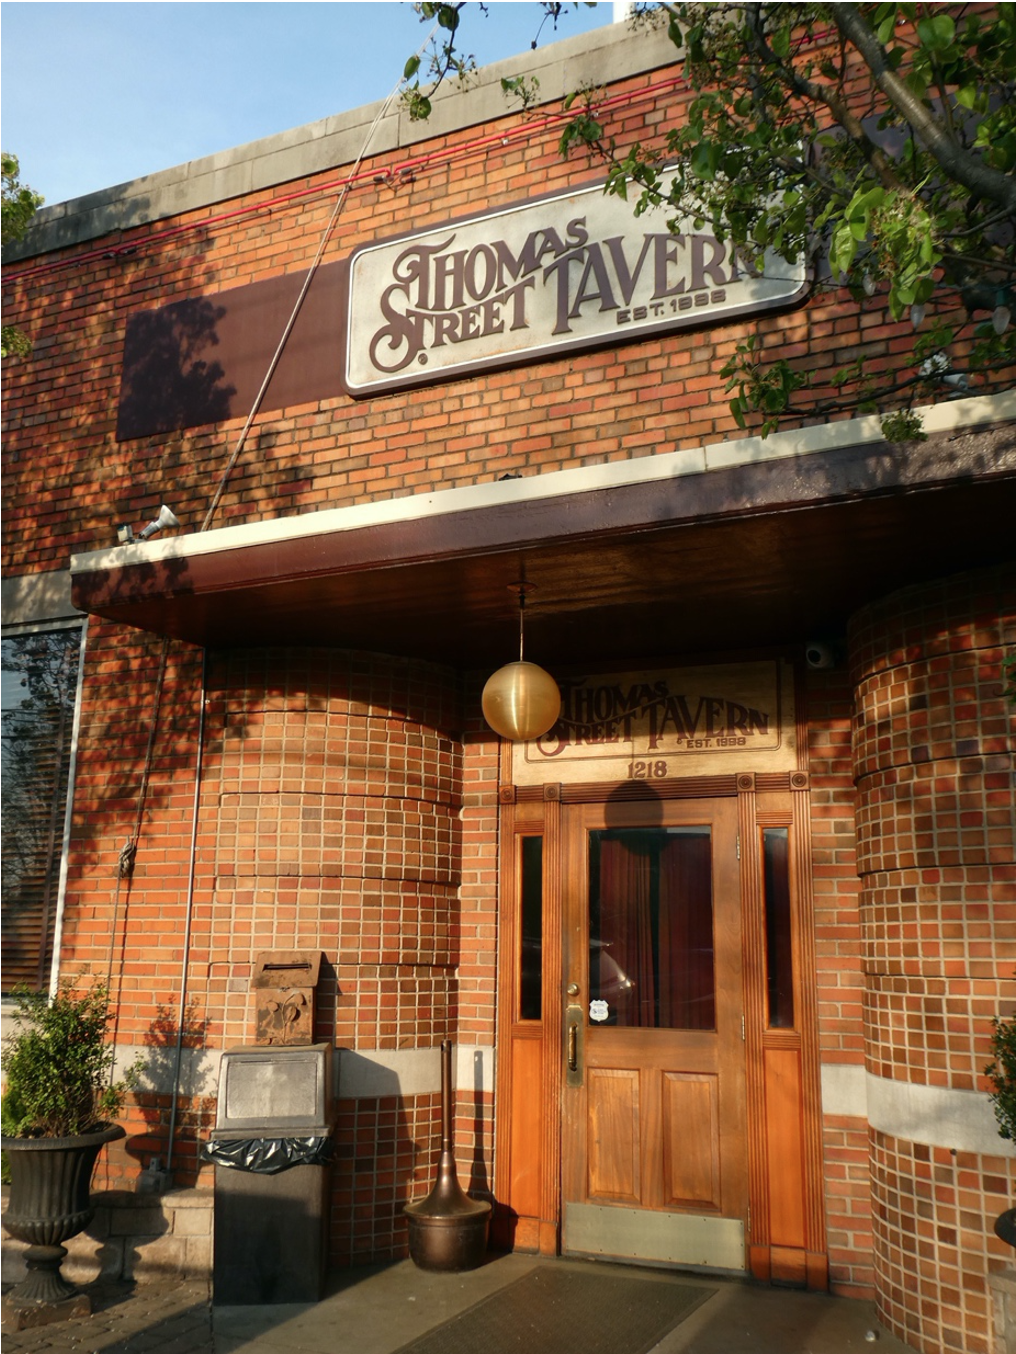 These two popular neighborhood hang-outs had previous lives. DISH was the Ho Toy, a culinary hot spot in the days when Charlotte's ethnic eateries consisted entirely of two Chinese restaurants. TOM TAVERN was Plaza Midwood's Post Office until the current one opened in the 1990s.